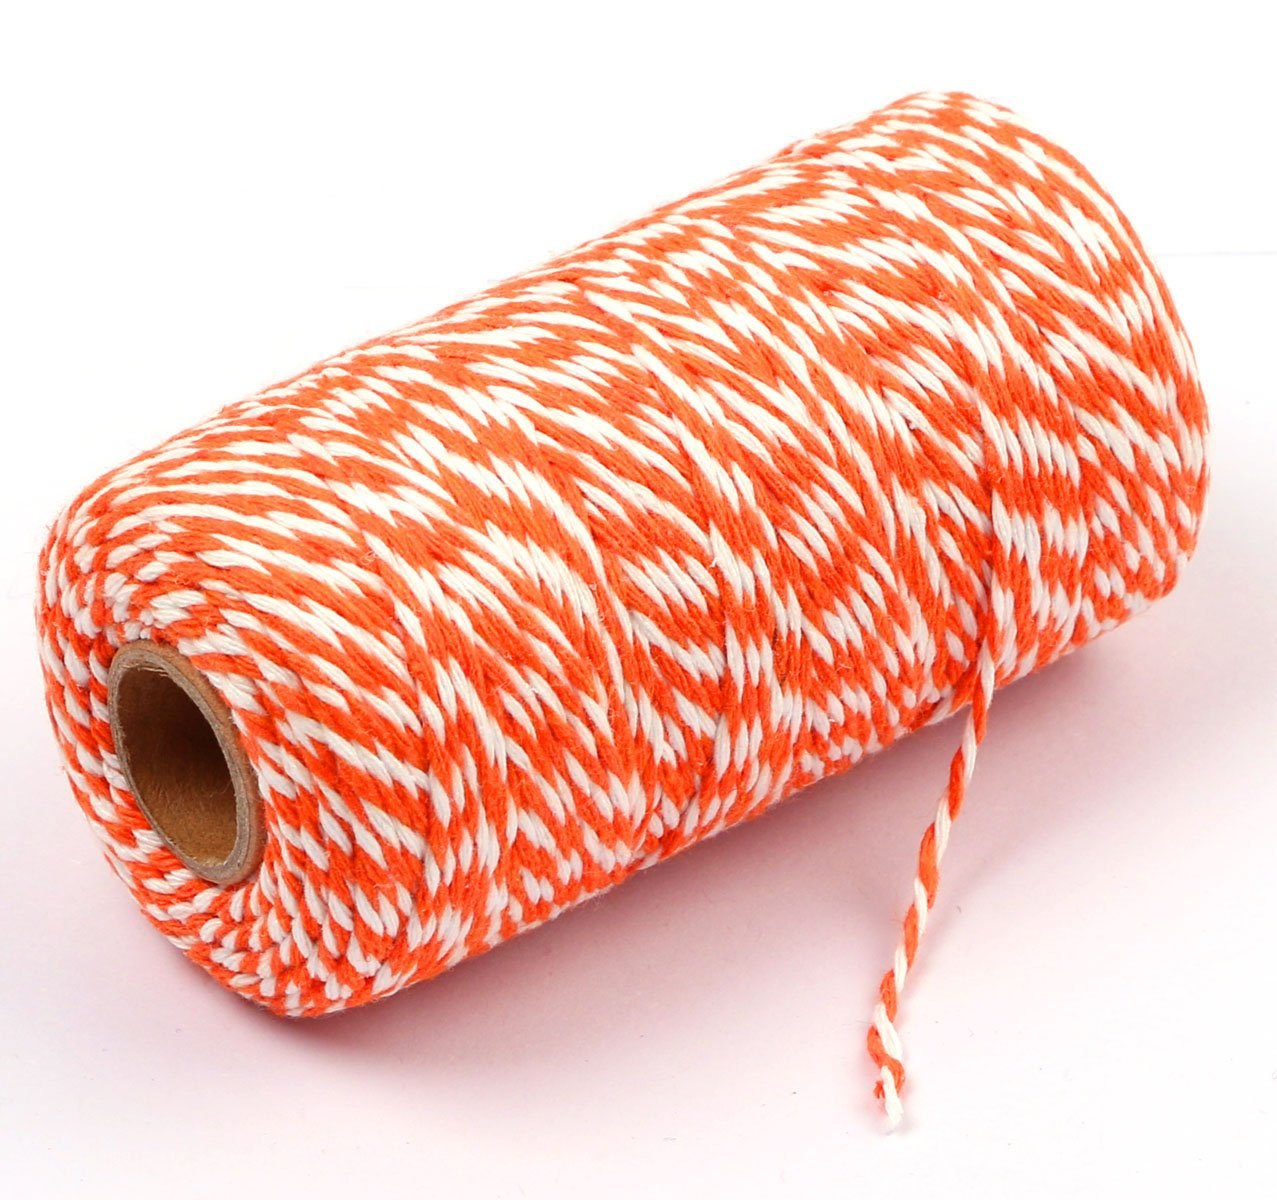 Orange and White Penta Angel 2mm Diameter 100M //109 Yards Natural Cotton Baker Twine Cording DIY Craft Twist String Spool Gift Wrapping Packing Rope for Garden Festival Decoration